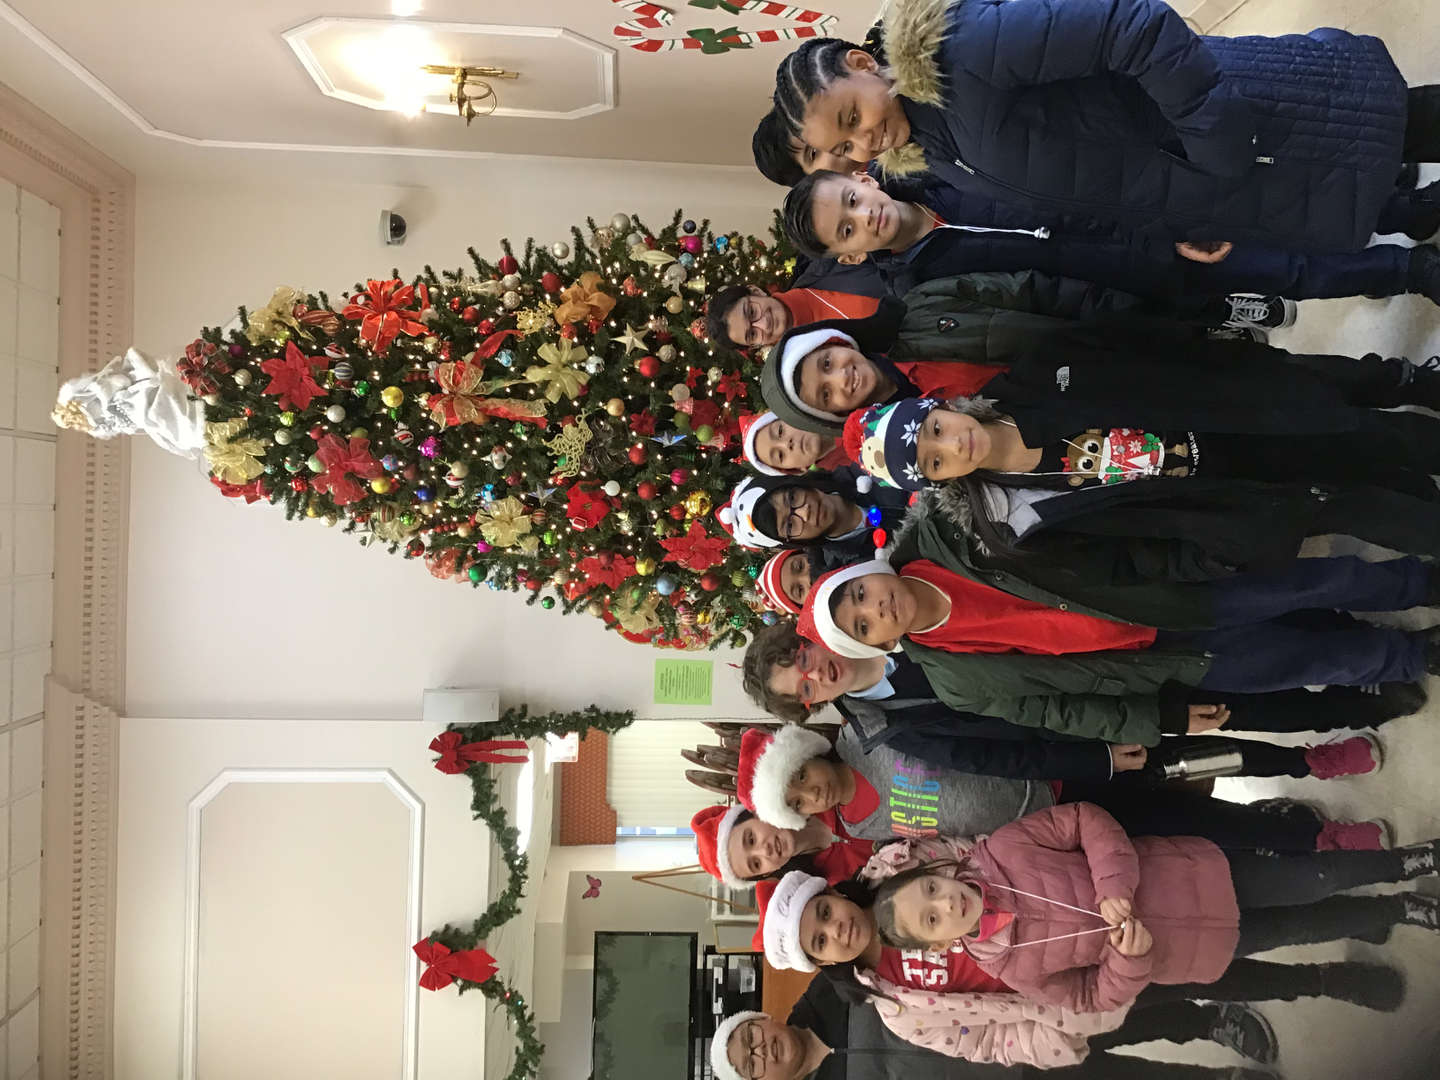 Holiday Caroling at Nursing Home